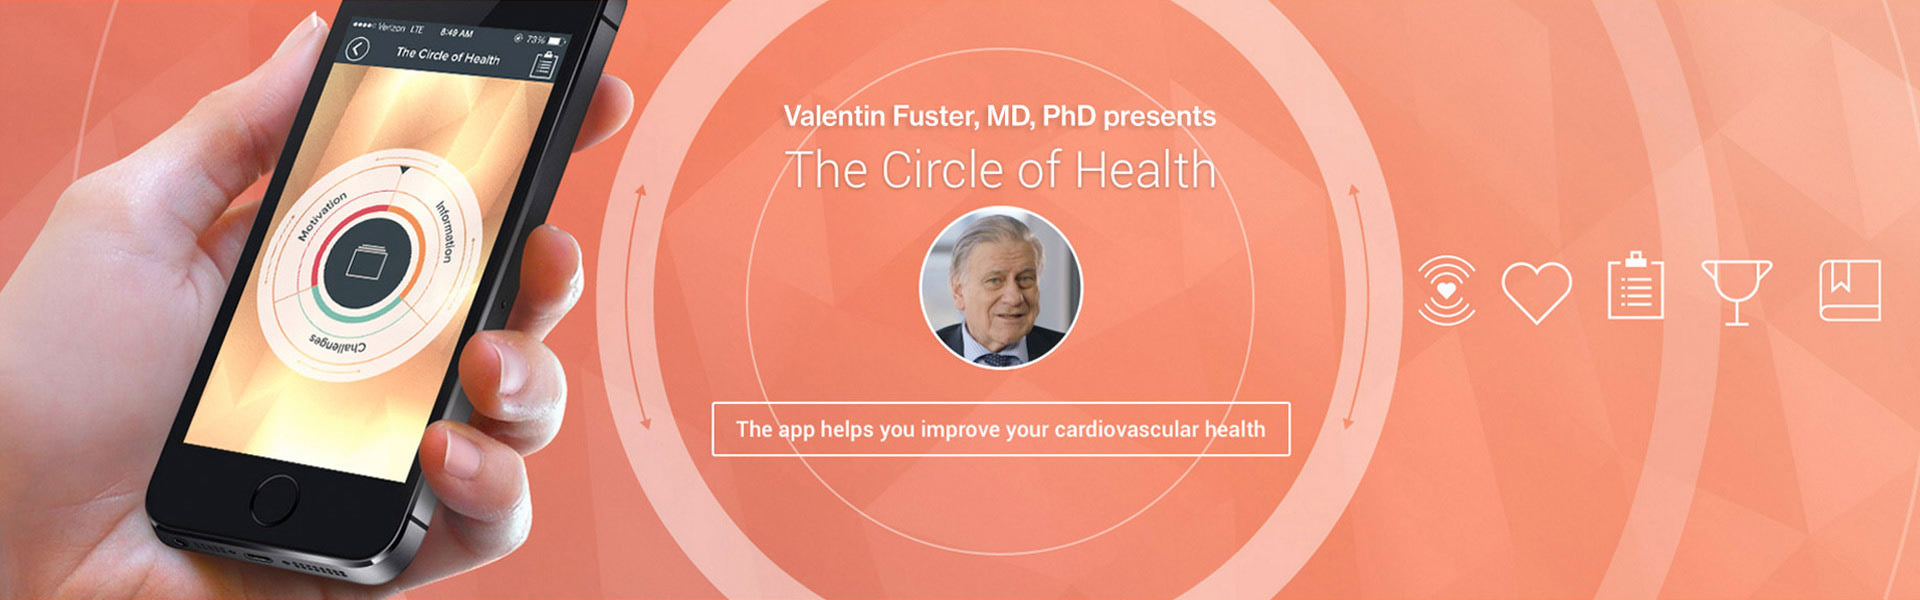 Image of the Circle of health phone app